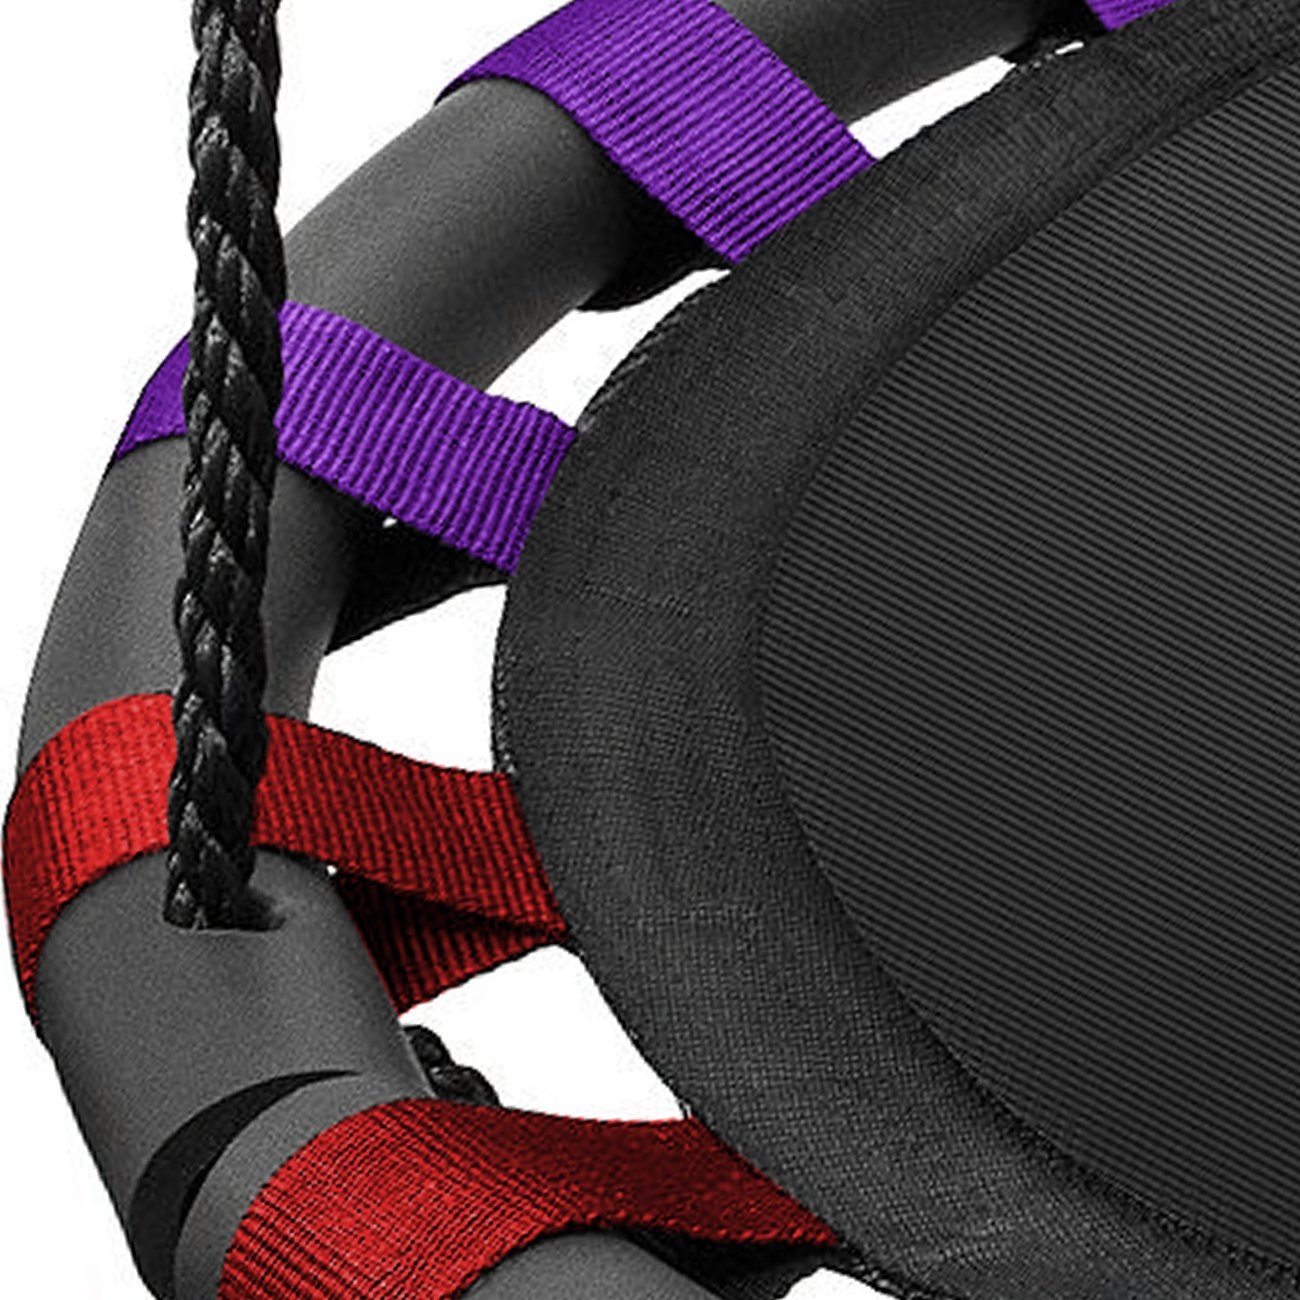 Sorbus Spinner Swing – Kids Indoor/Outdoor Round Mat Swing – Great for Tree, Swing Set, Backyard, Playground, Playroom – Accessories Included (24 Inch, Multi-Color Mat Seat)